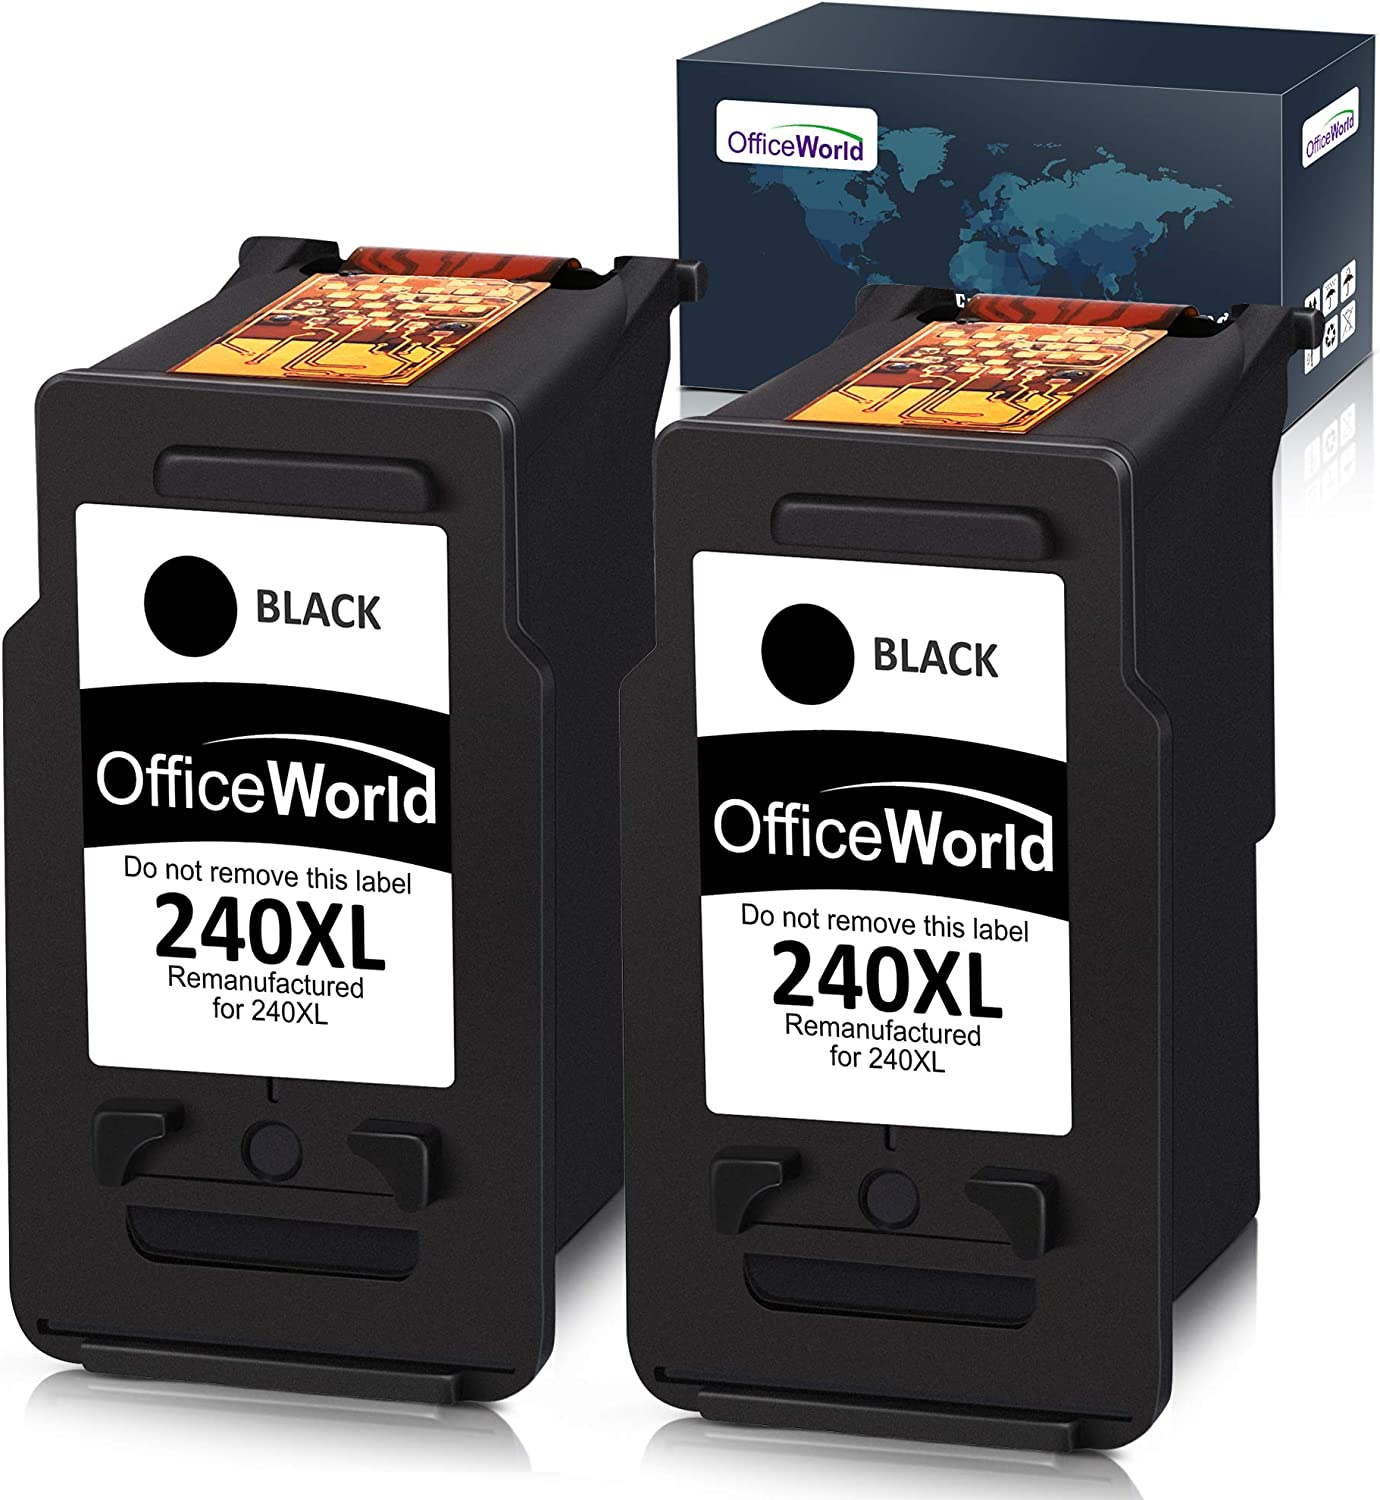 OfficeWorld Remanufactured Ink Cartridge Replacement for Canon PG-240XL 240 XL for Canon Pixma MG3620 MX472 MX452 MG3220 MG3520 MG2220 MX532 MX392 MX432 MX512 (Black, 2-Pack)